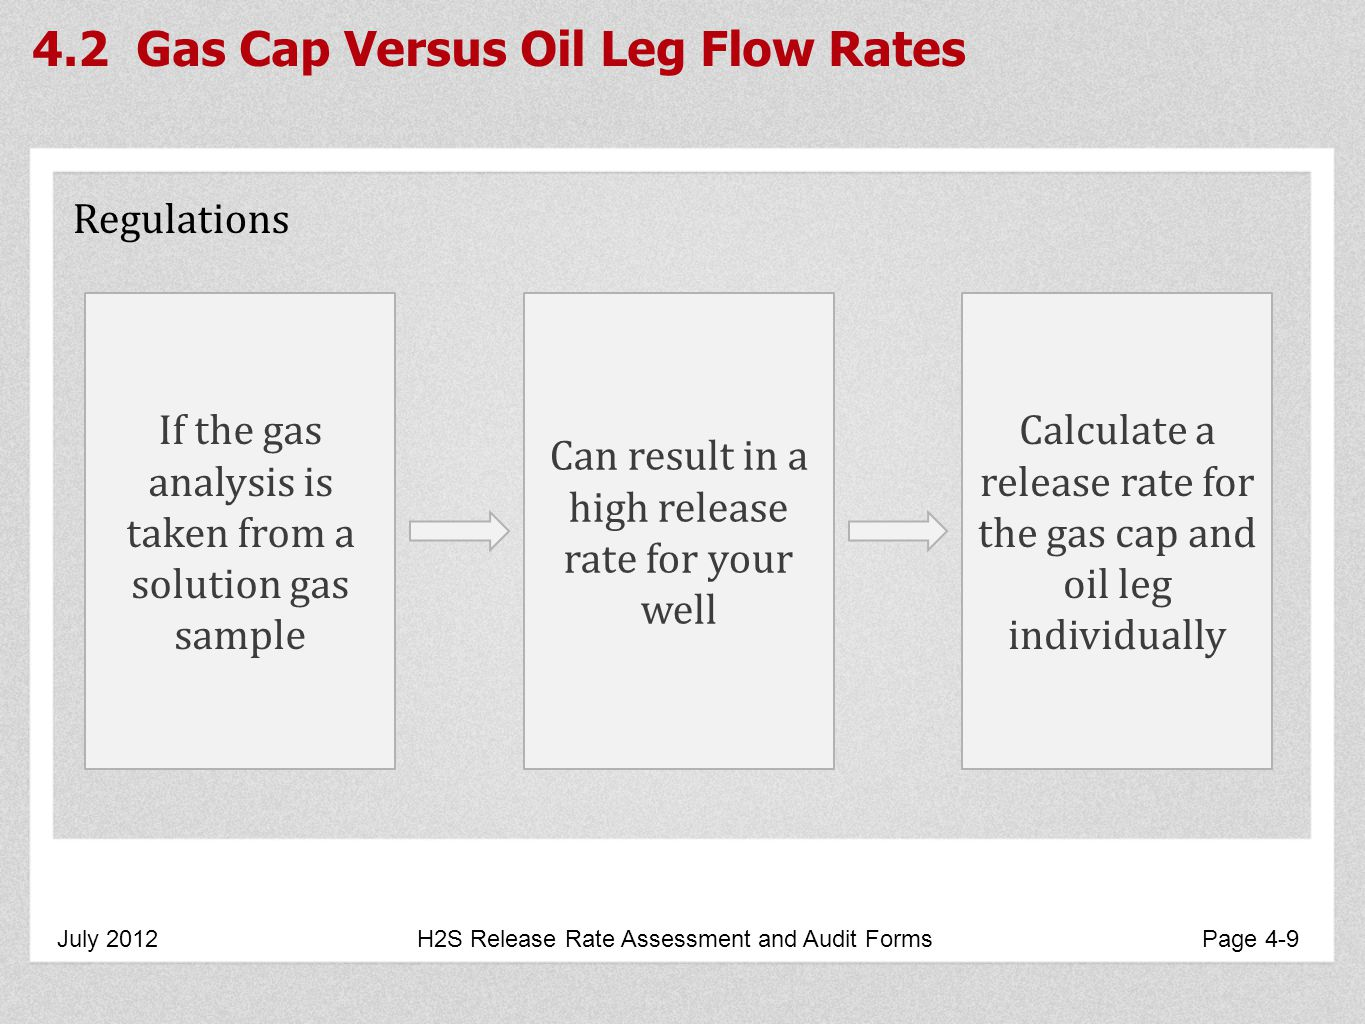 4.2 Gas Cap Versus Oil Leg Flow Rates July 2012 H2S Release Rate Assessment and Audit Forms Page 4-9 Regulations If the gas analysis is taken from a solution gas sample Can result in a high release rate for your well Calculate a release rate for the gas cap and oil leg individually